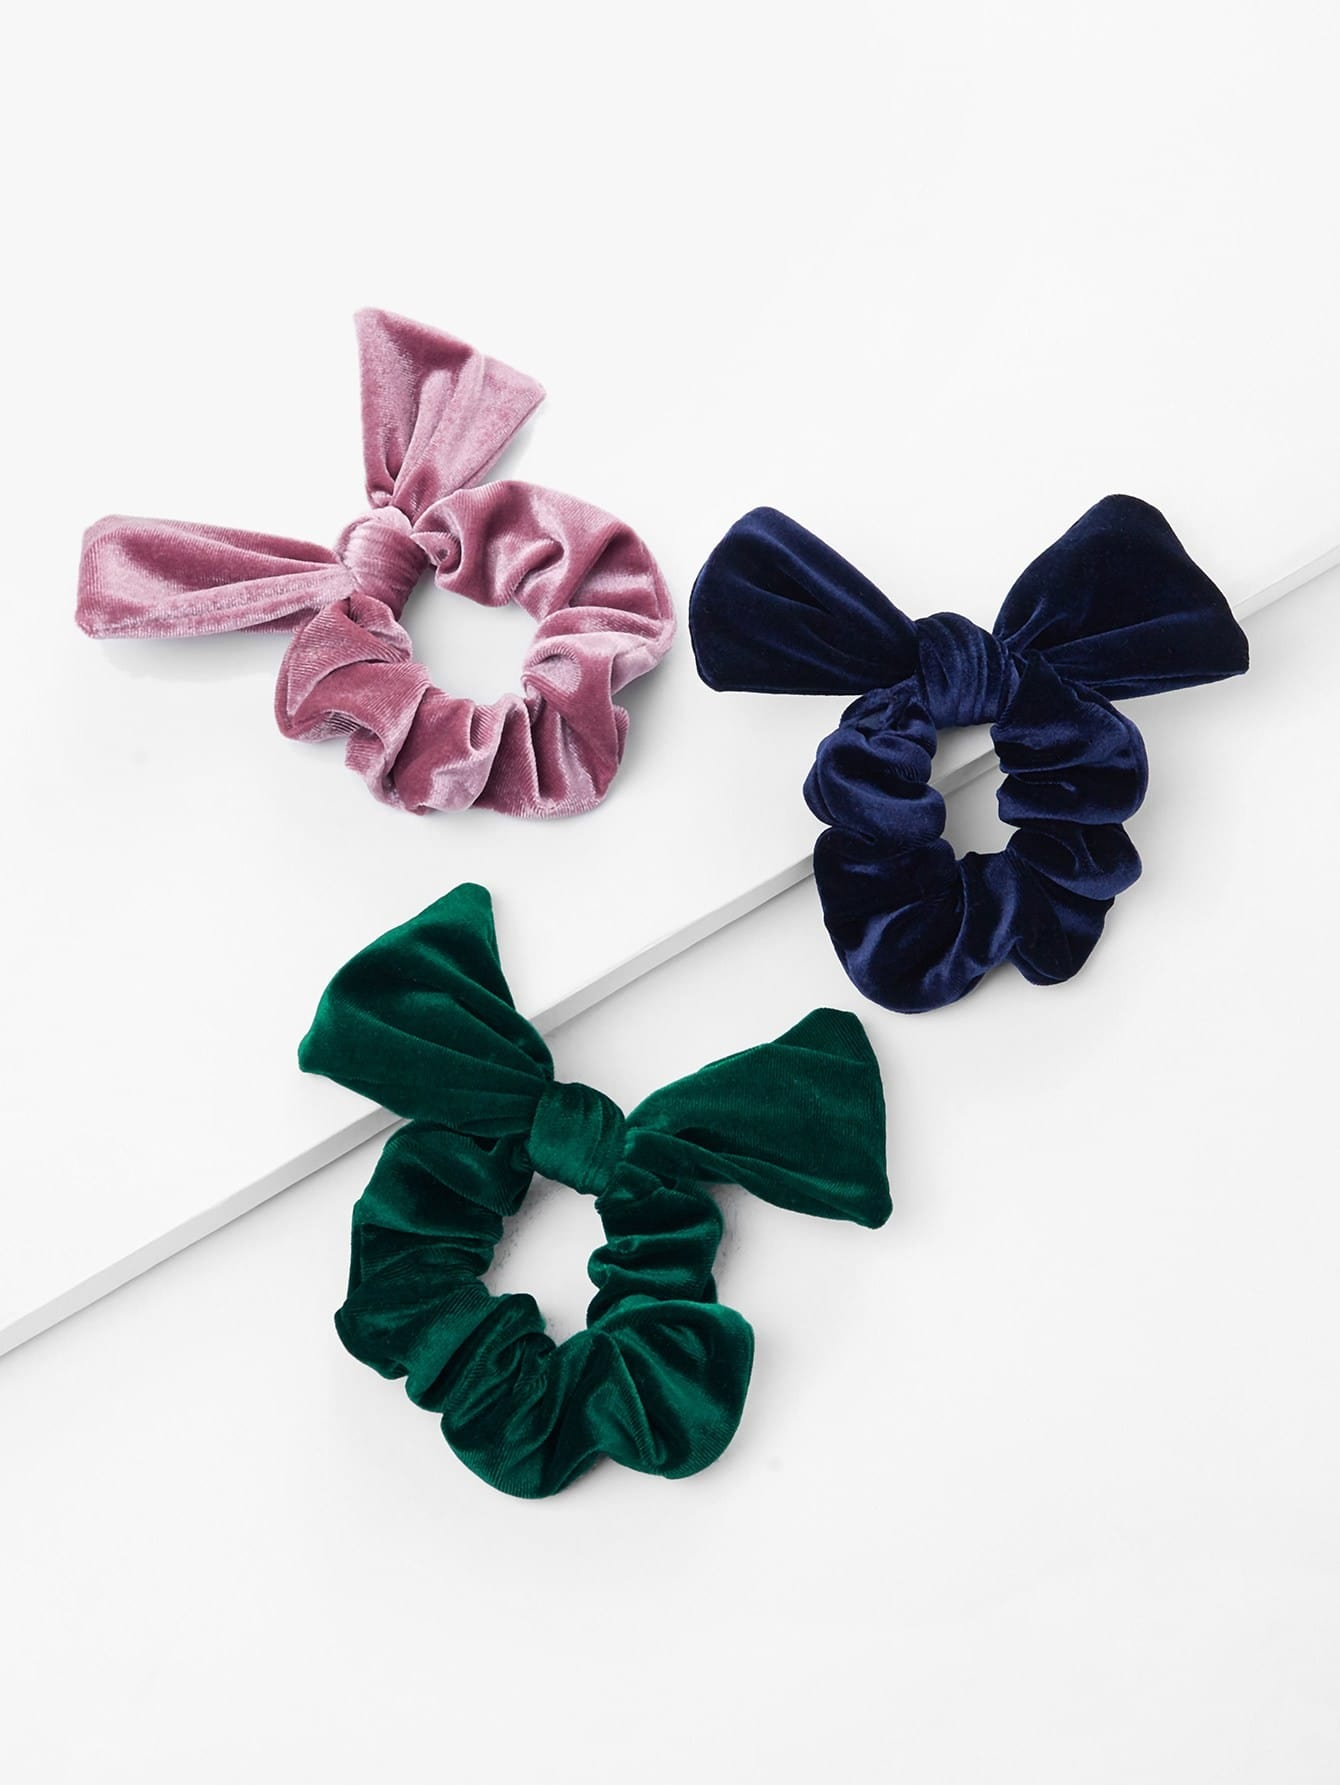 Velvet Knot Hair Tie 3pcs ear knot velvet hair tie 2pcs